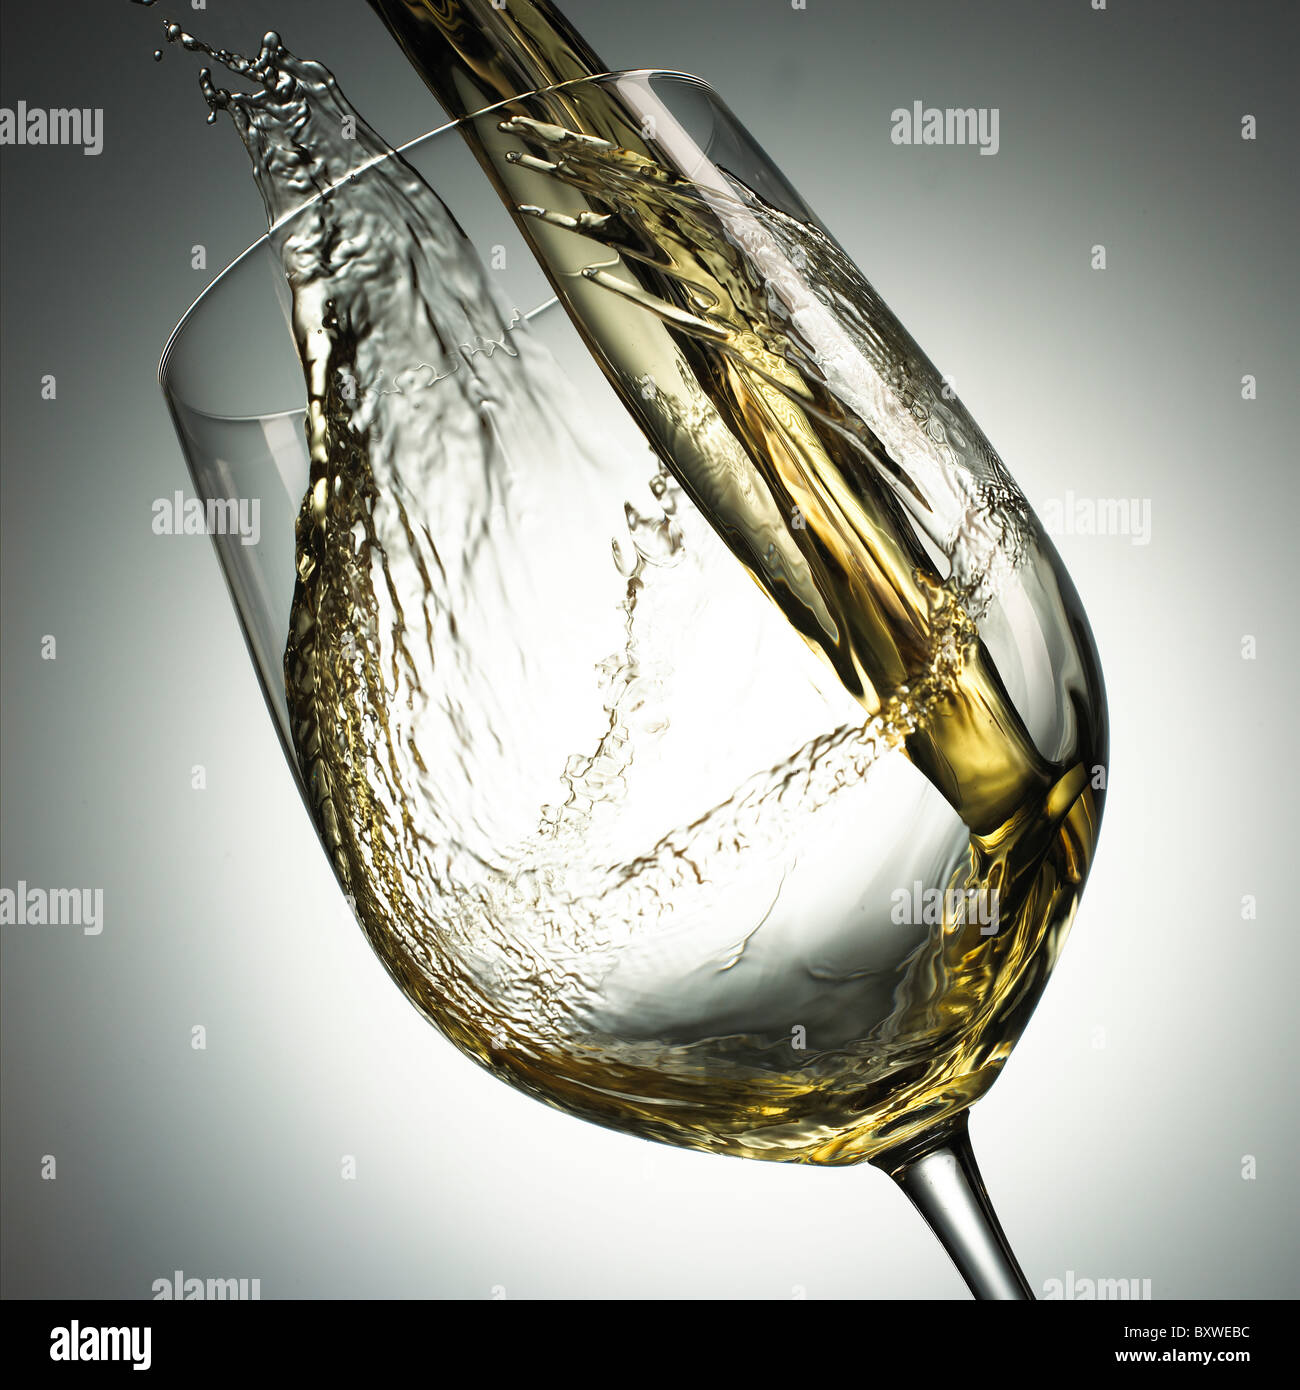 wine being poured into a glass - Stock Image